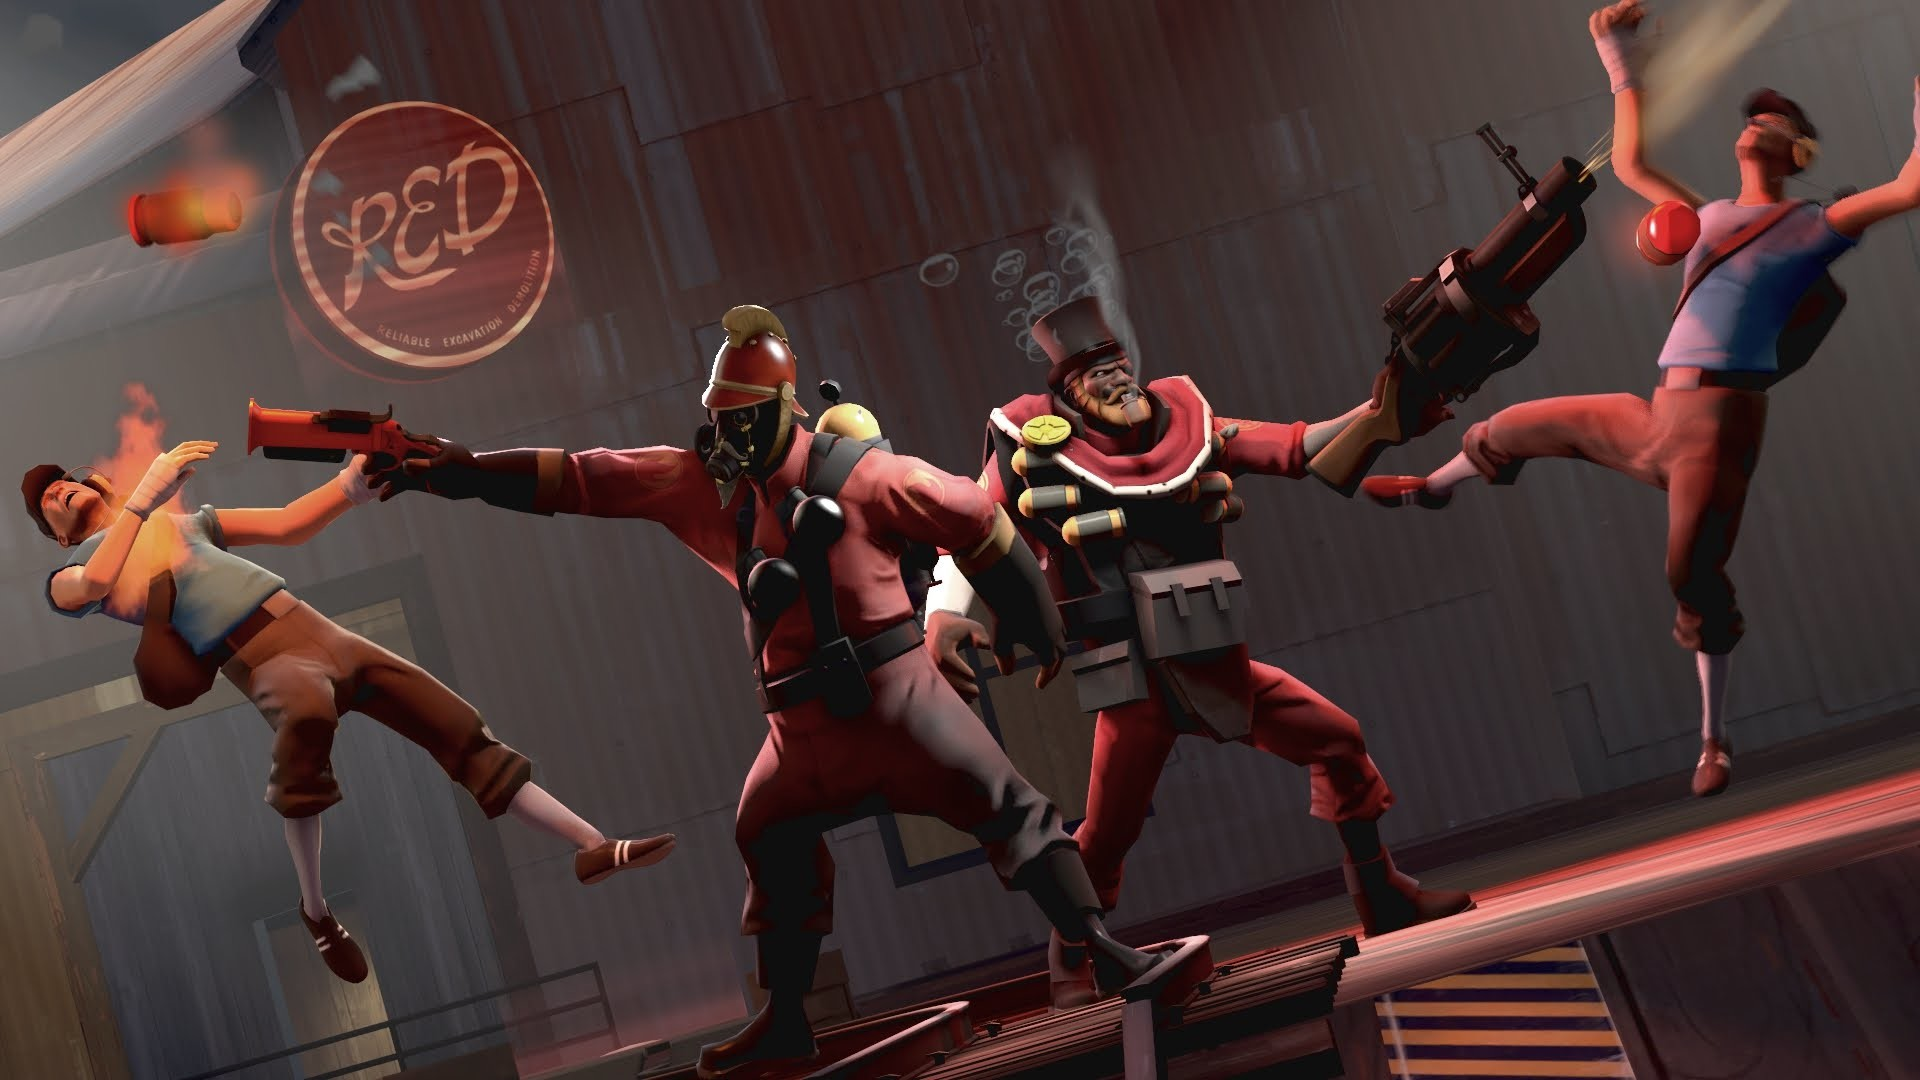 Tf2 Wallpaper Engineer Posted By Ethan Johnson